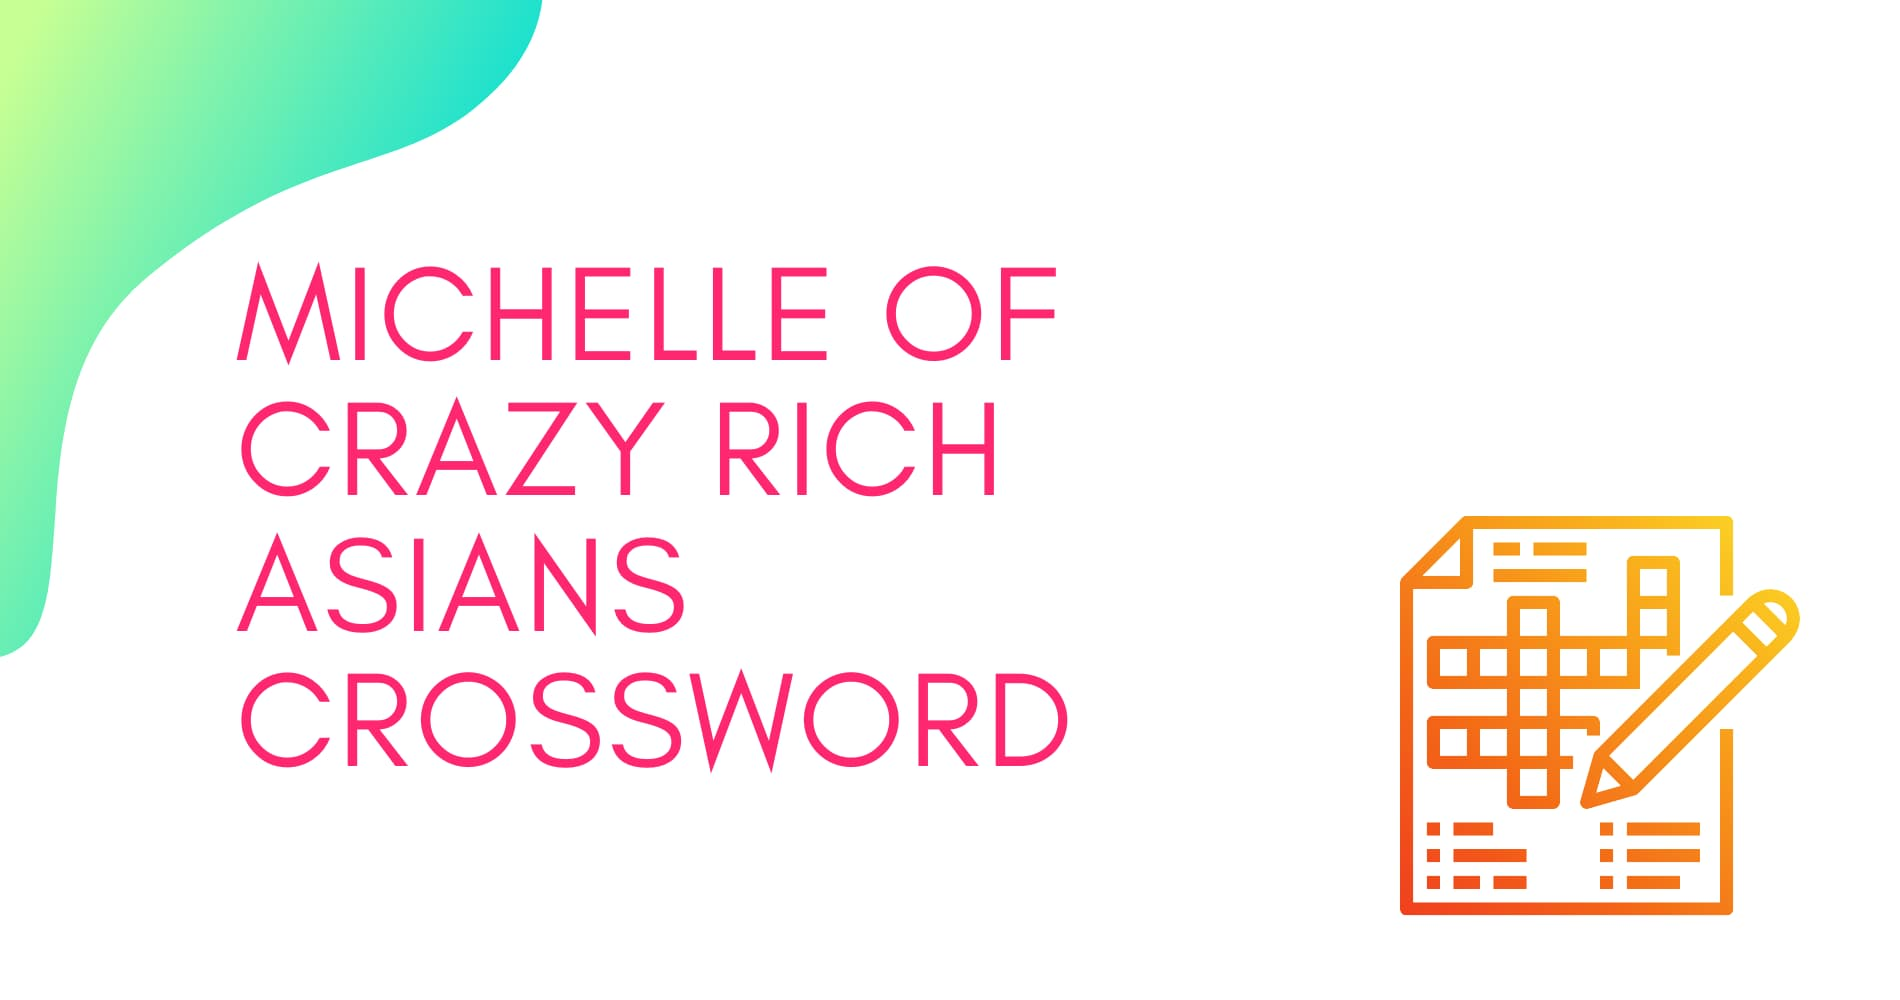 Michelle of crazy rich Asians crossword